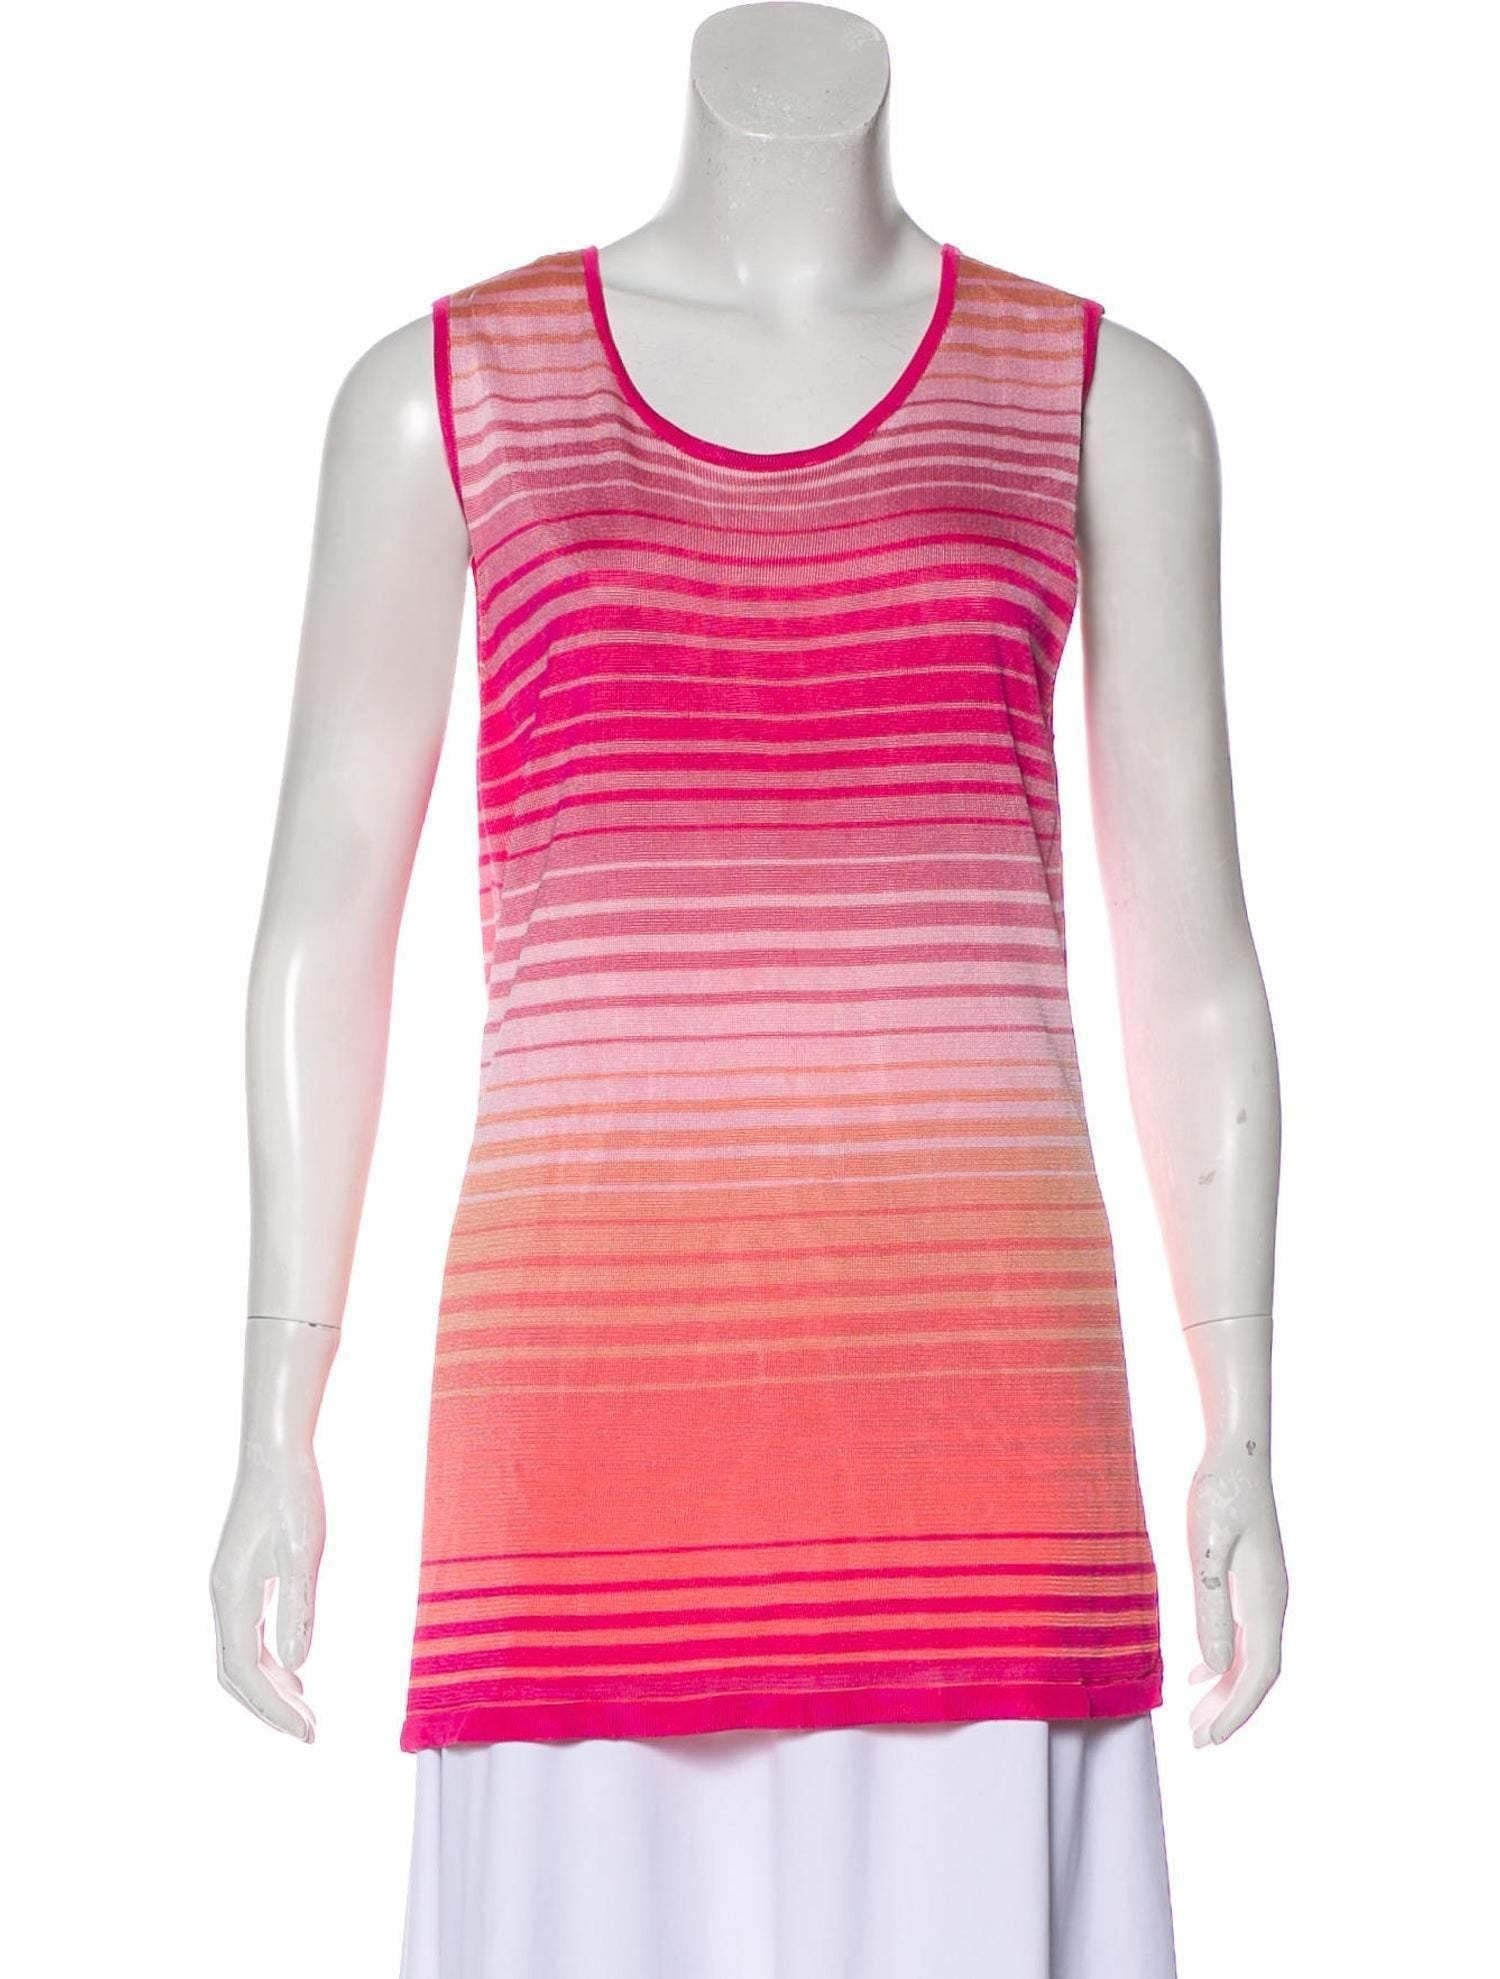 MAGASCHONI Striped Sleeveless Top Large - Your Fashions For Less